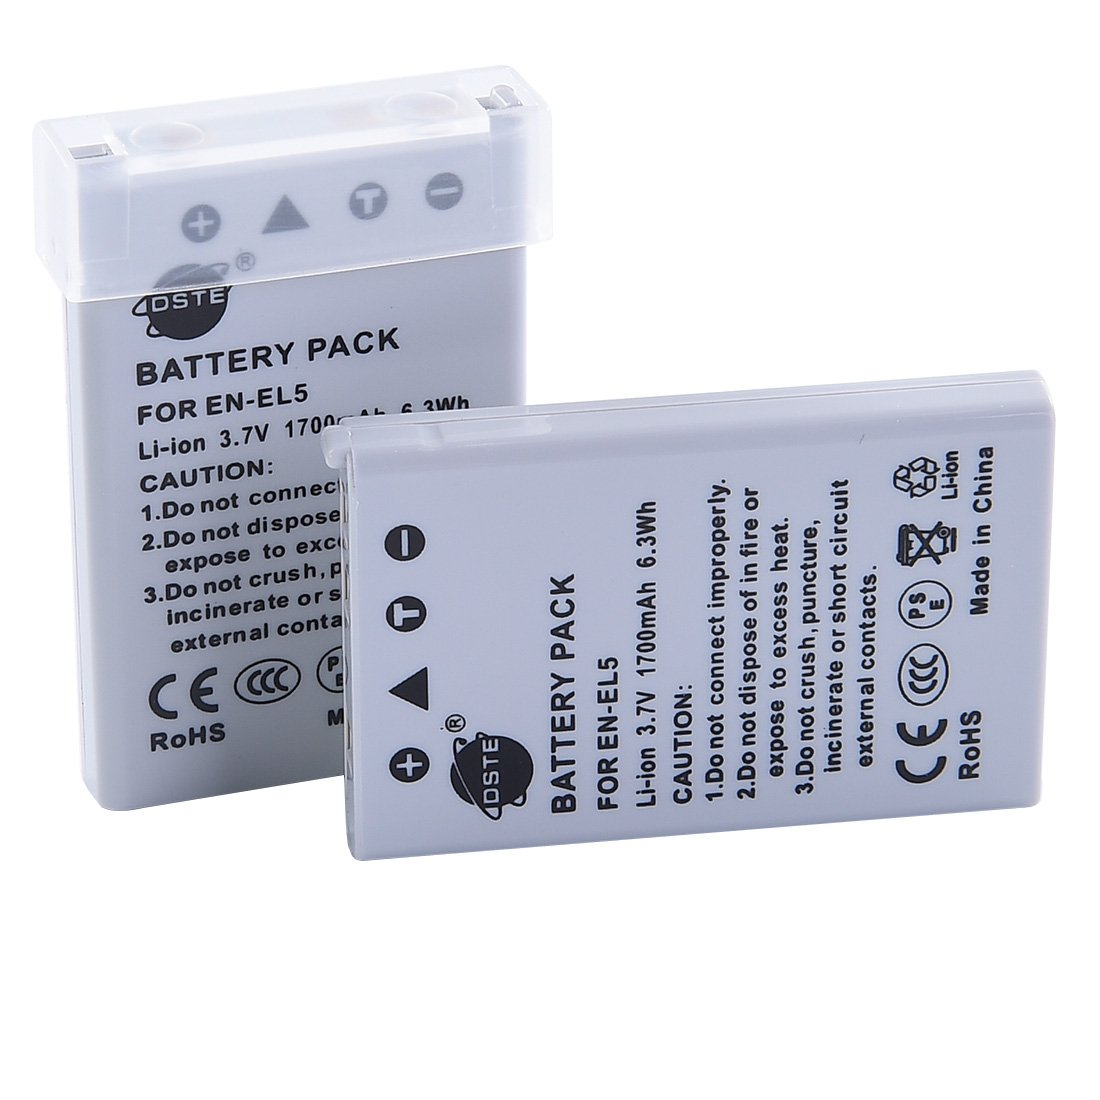 DSTE® 2x EN-EL5 Replacement Li-ion Battery for Nikon Coolpix P530 P5000 P5100 7900 P6000 3700 4200 5200 5900 P80 P90 P100 P500 P510 P520 P3 P4 S10 Camera DST Electron Technological Co. Ltd DANK06A2